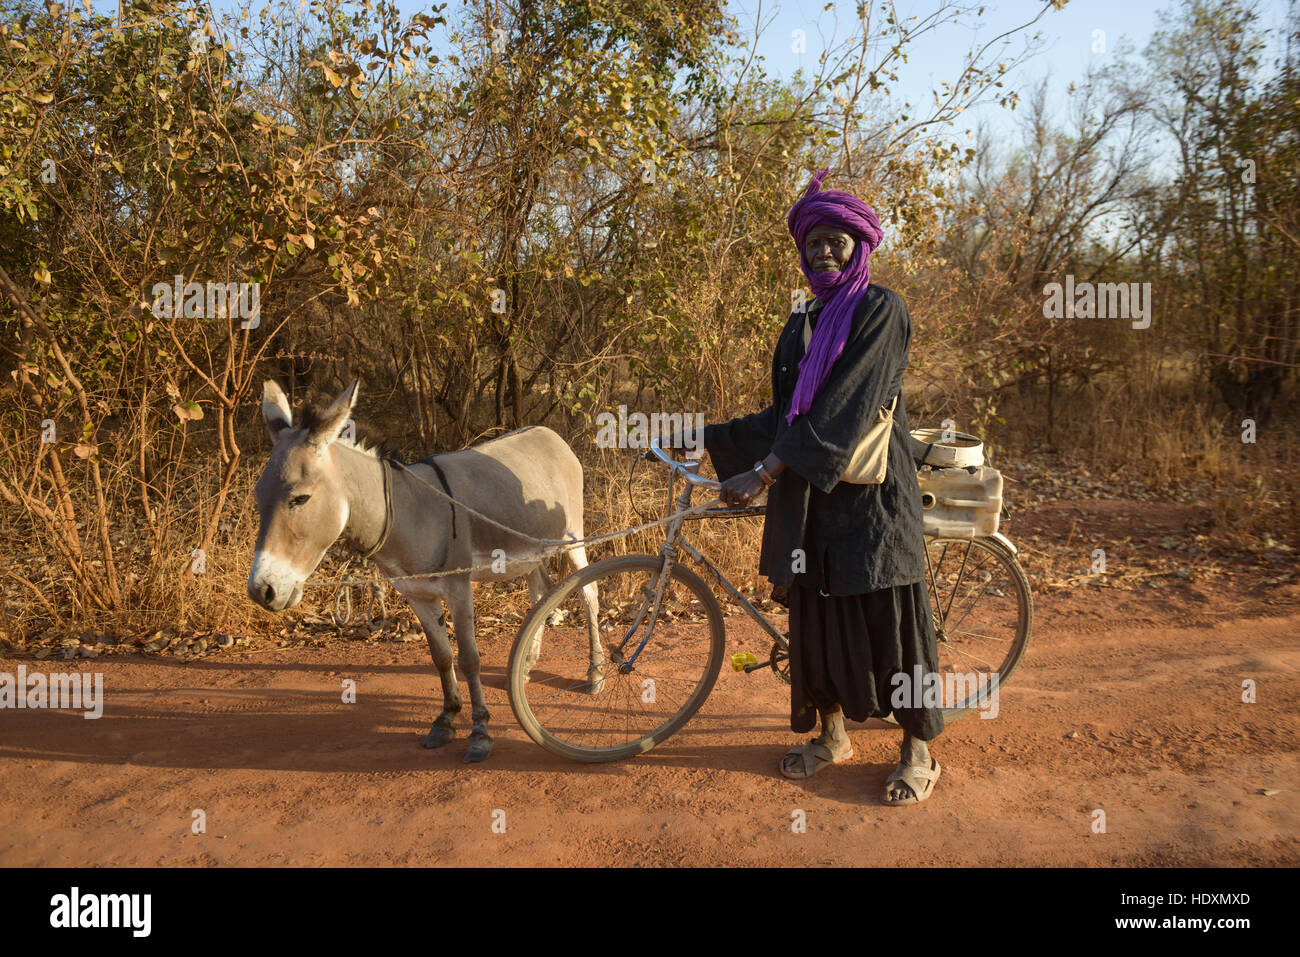 A man from the Peul ethnic group of The Gambia - Stock Image